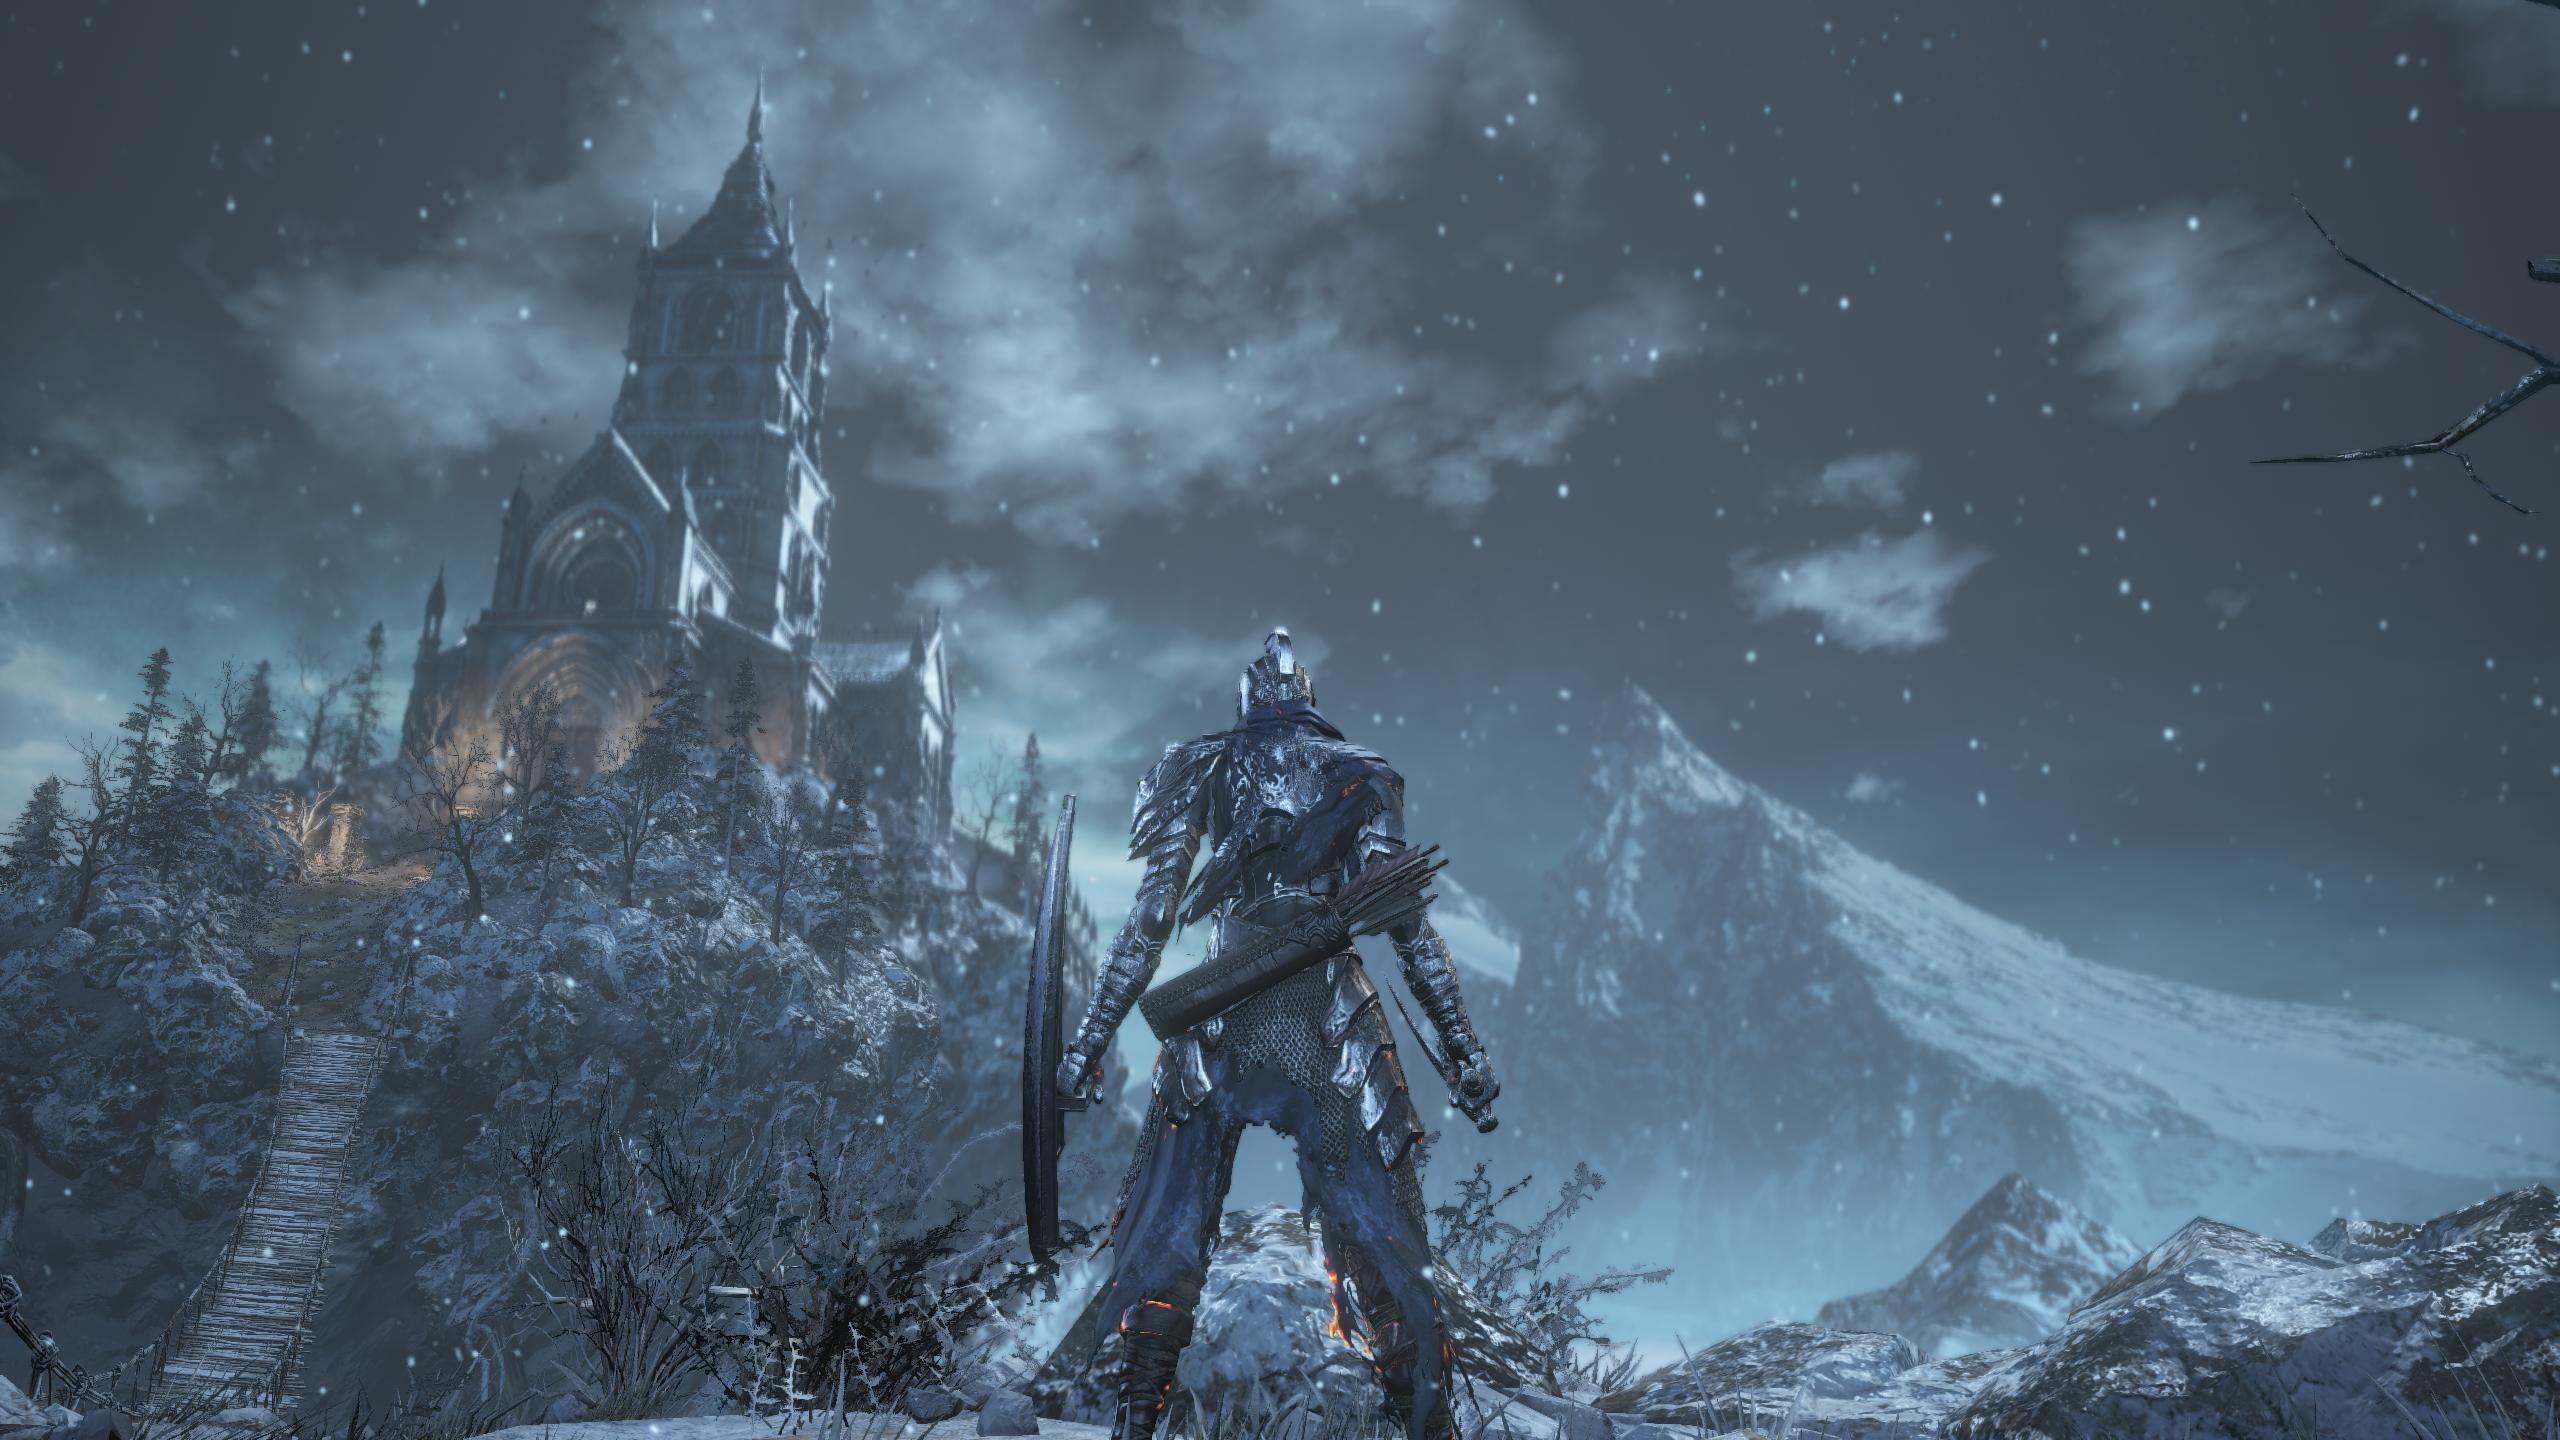 dark-souls-3 dark-souls-3-ashes-of-ariandel editors-picks